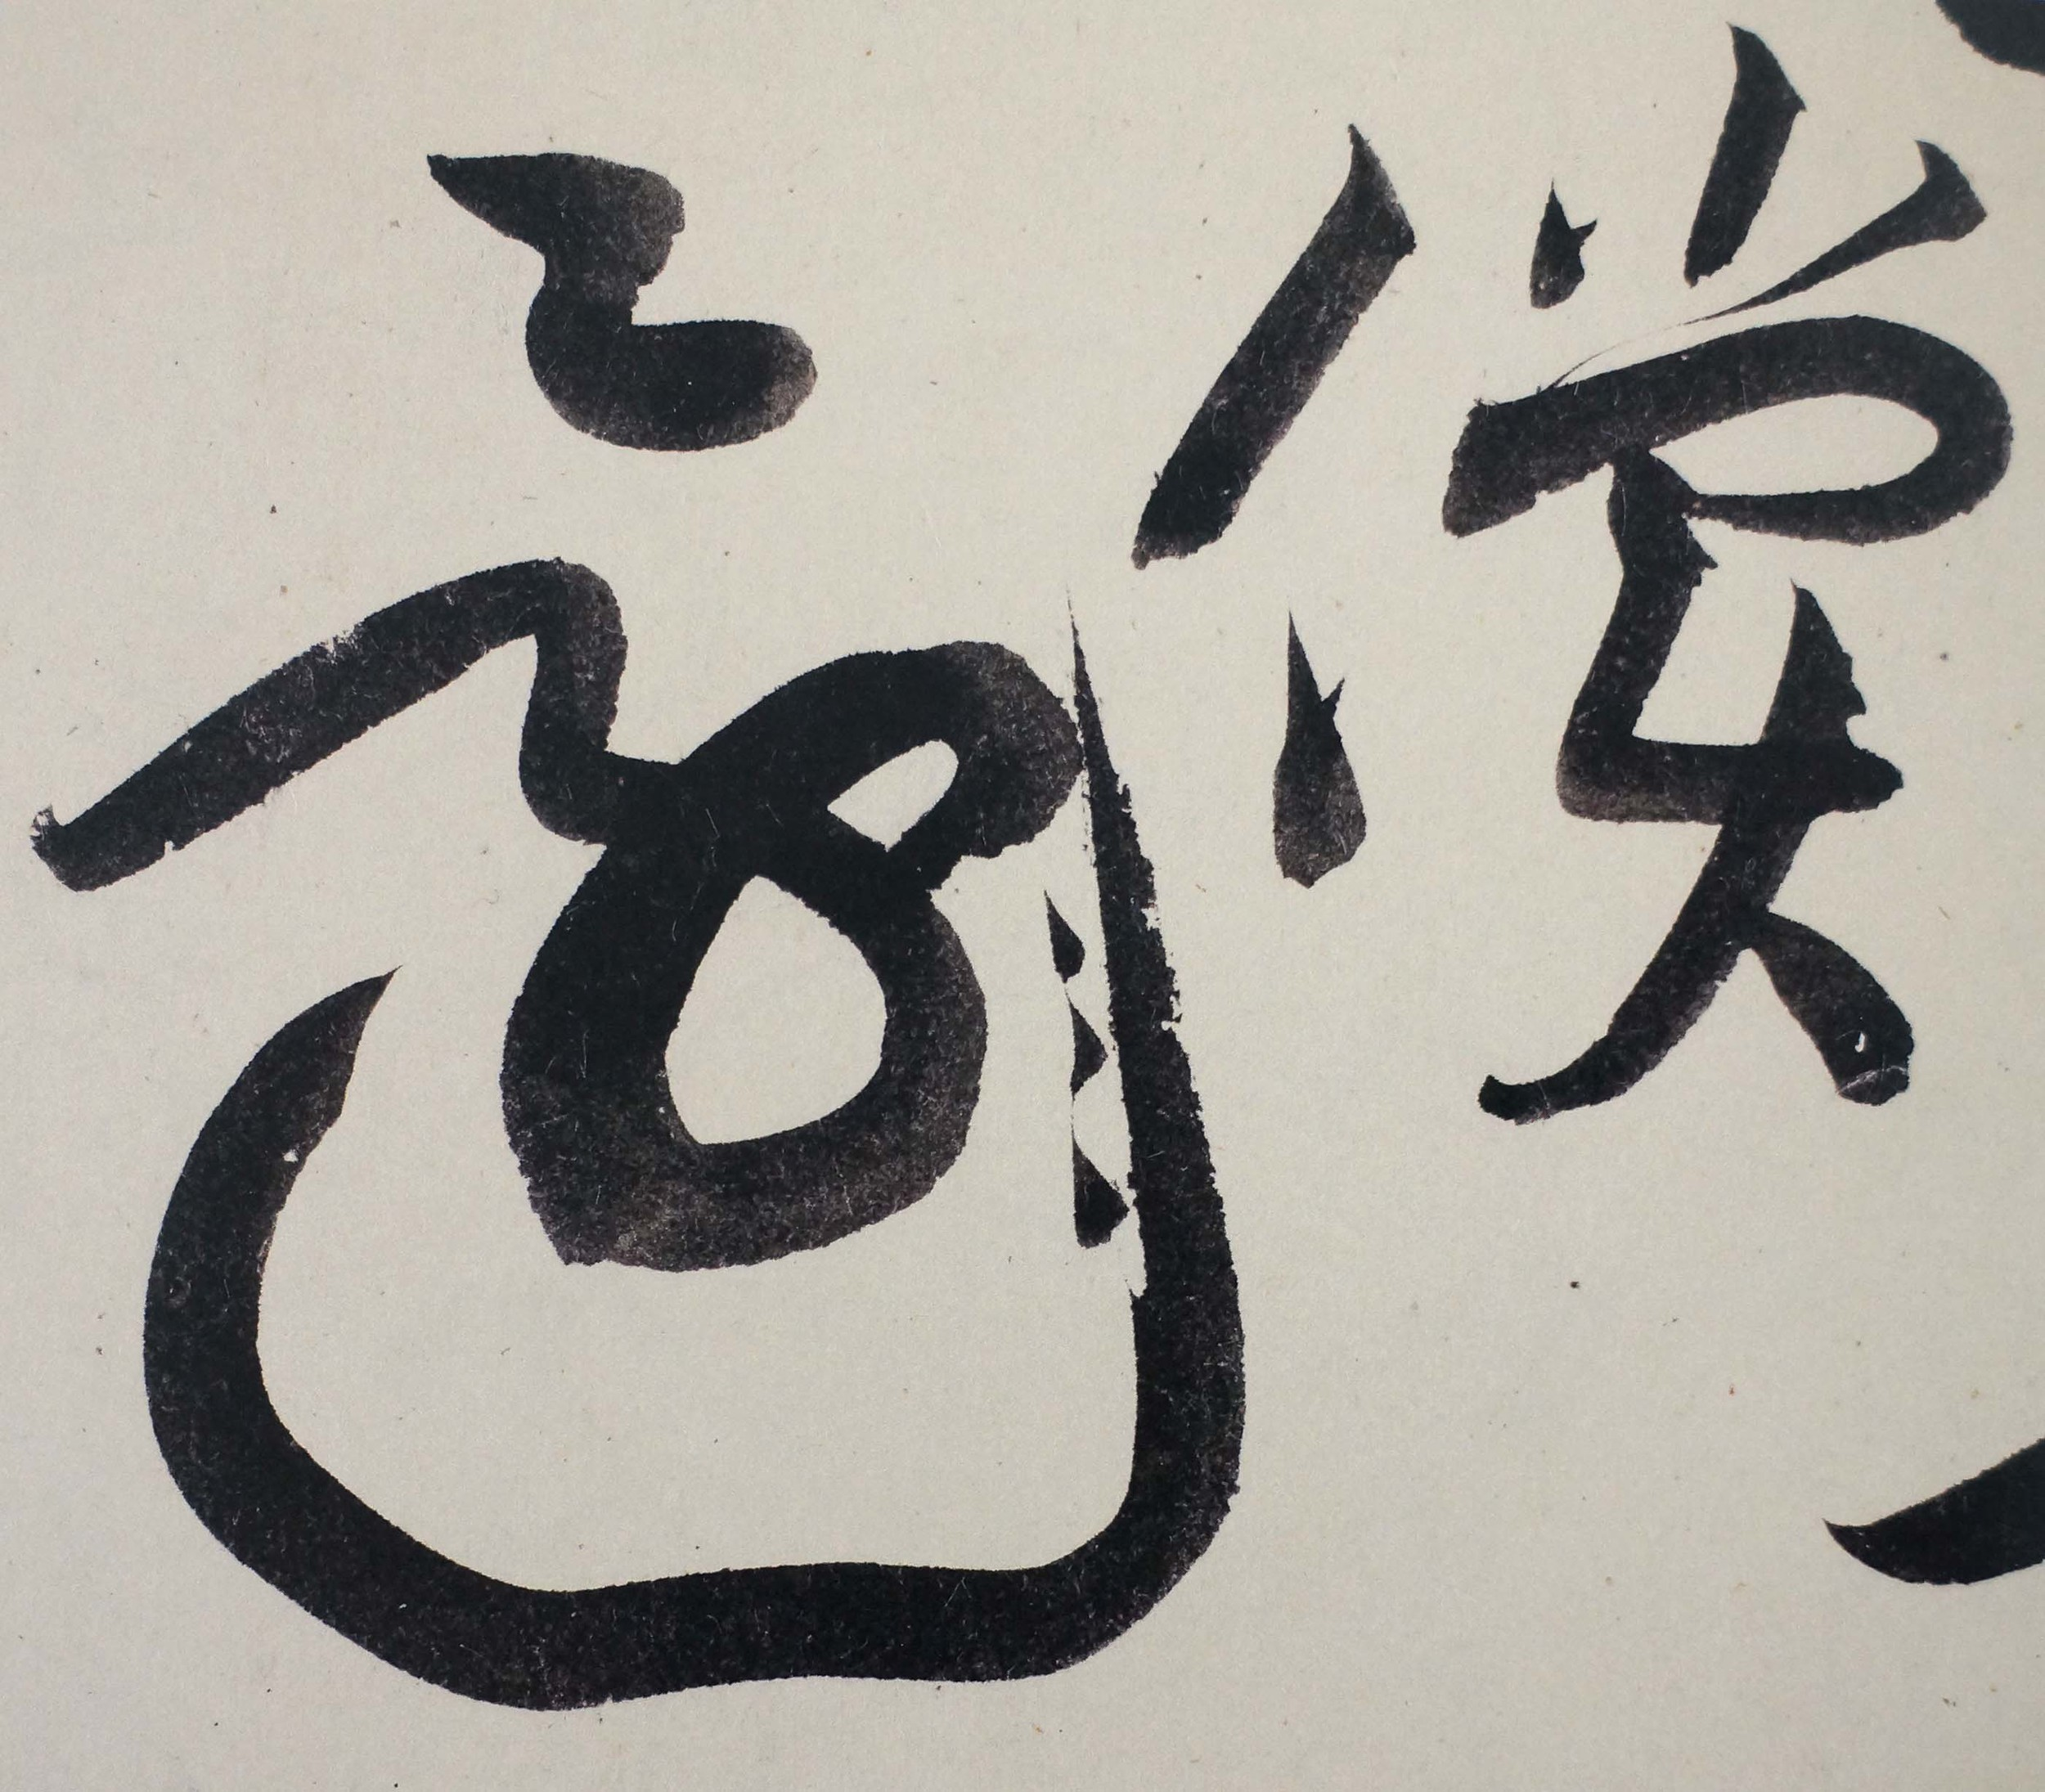 huang tingjian's (1045-1105) calligraphic  huan  is on the left. the 3 little dots mean this is a mistranscribed character. on the right,  chang , which has the same meaning, but is the word used in the text he was transcribing.